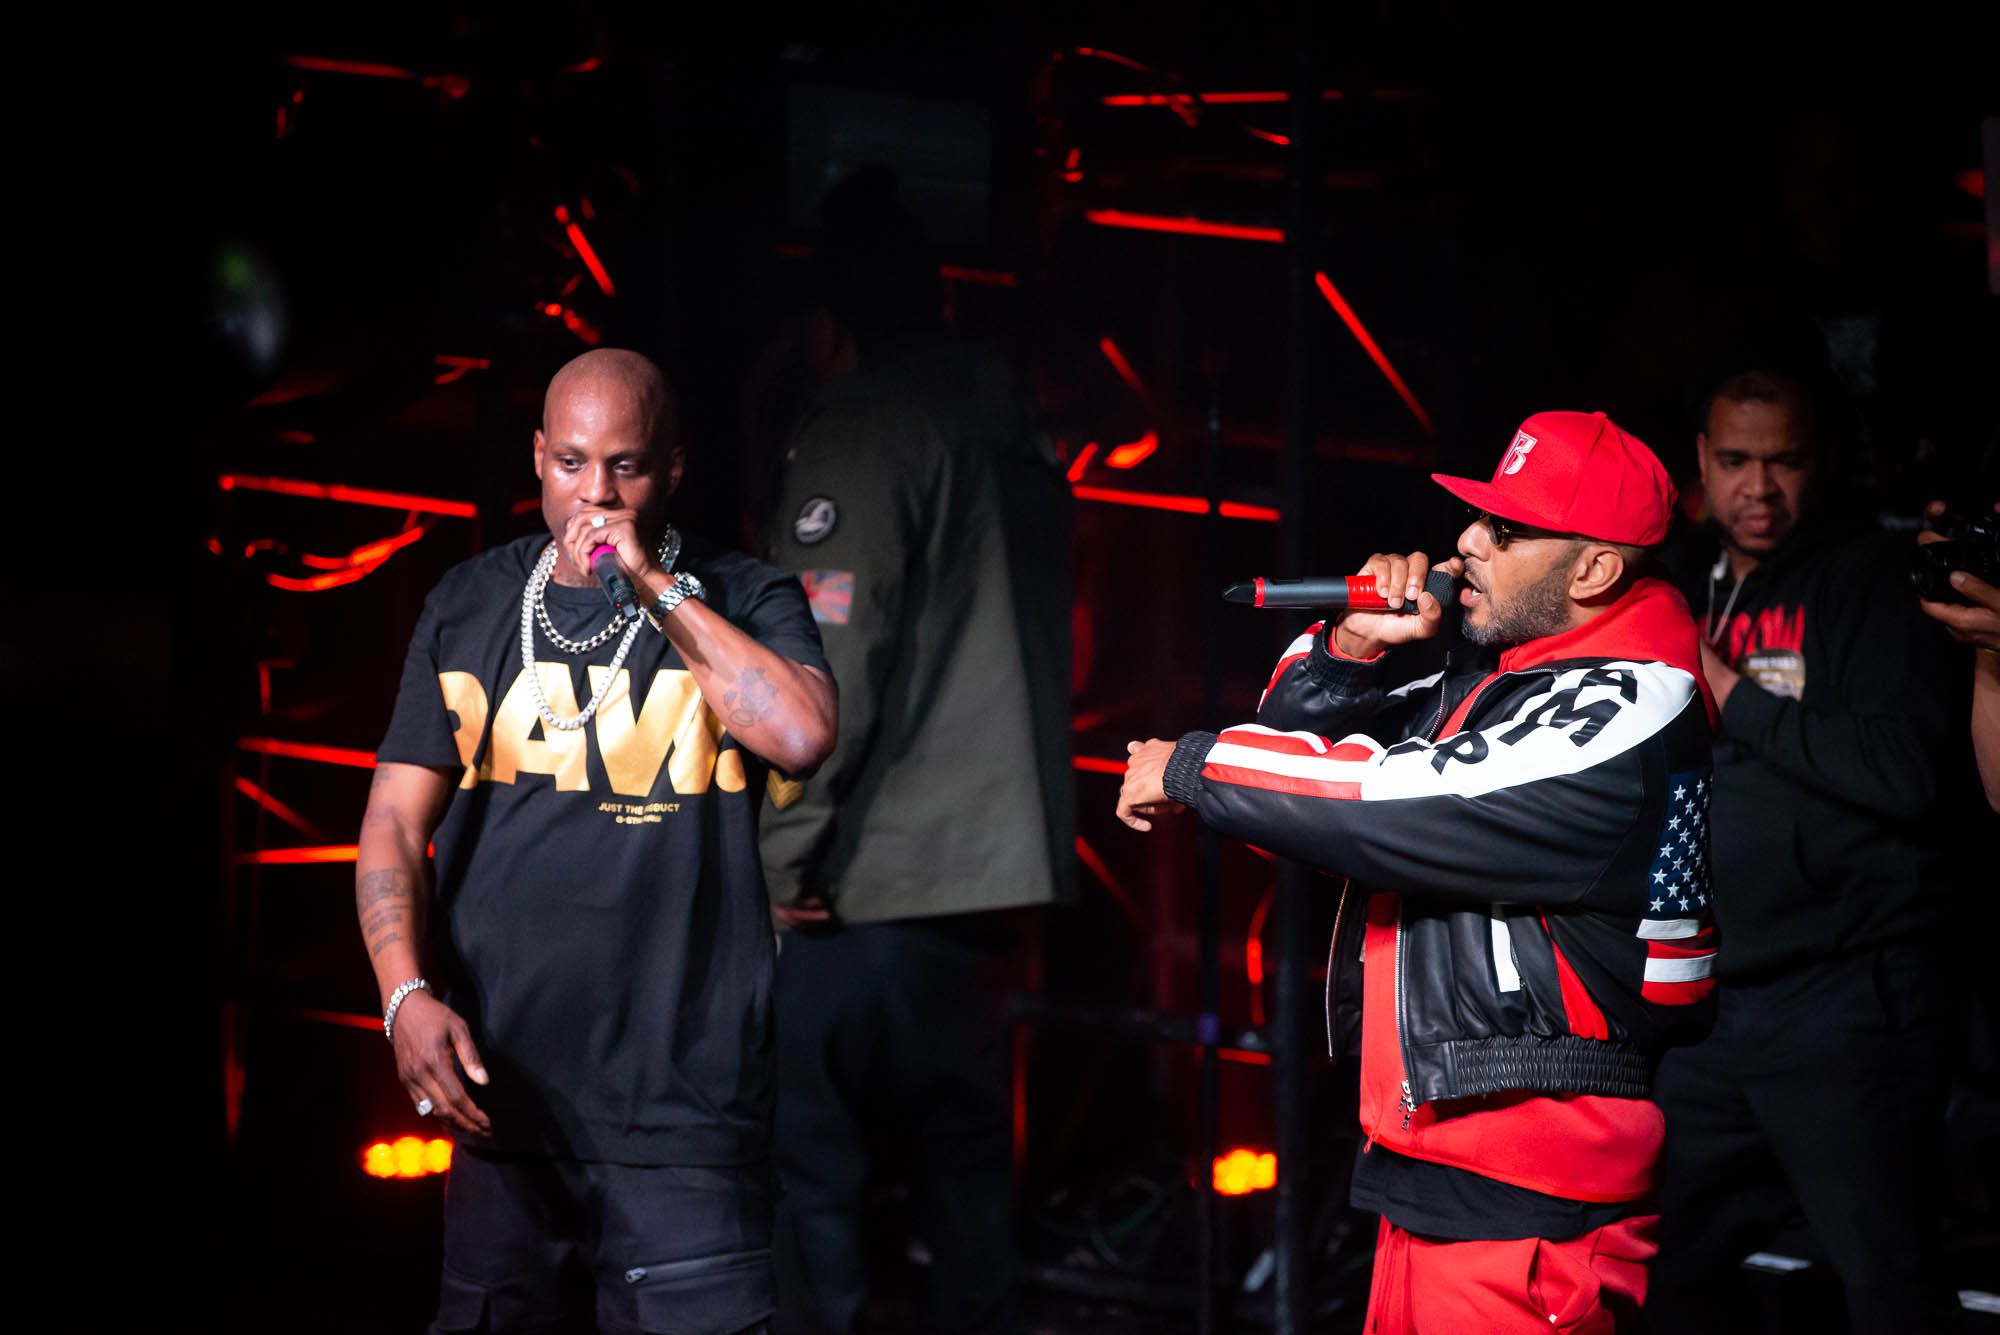 DMX joined by special guest Swizz Beatz at Irving Plaza on Monday, April 1, 2019.